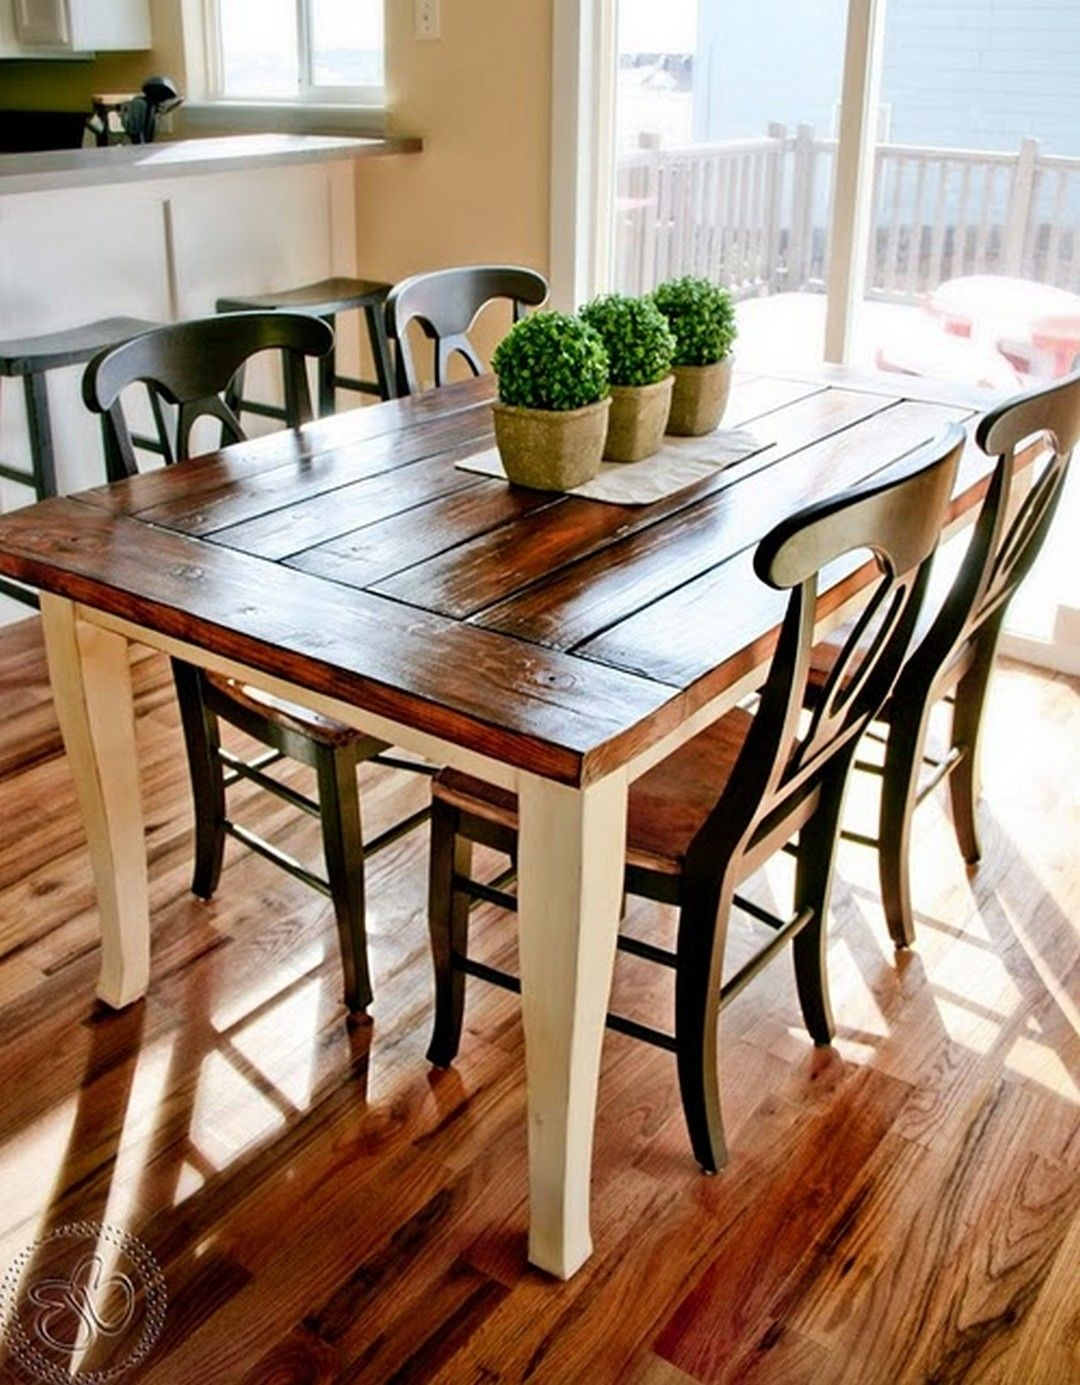 Farmhouse kitchen tables and chairs & Farmhouse Style Table And Chairs - Foter